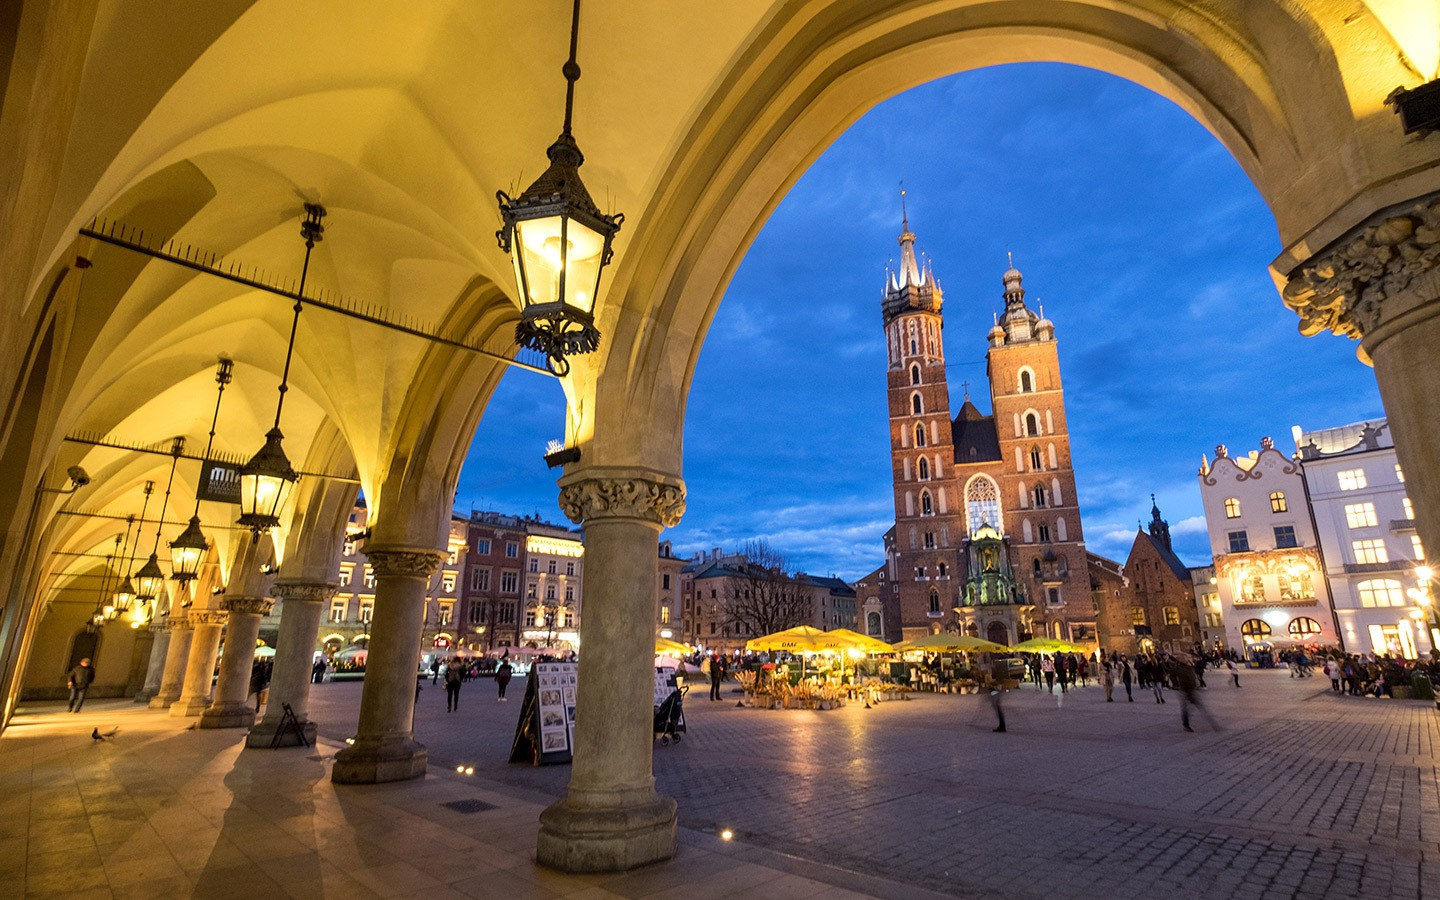 Krakow Poland at night with old church in square lamps and arches and a night market